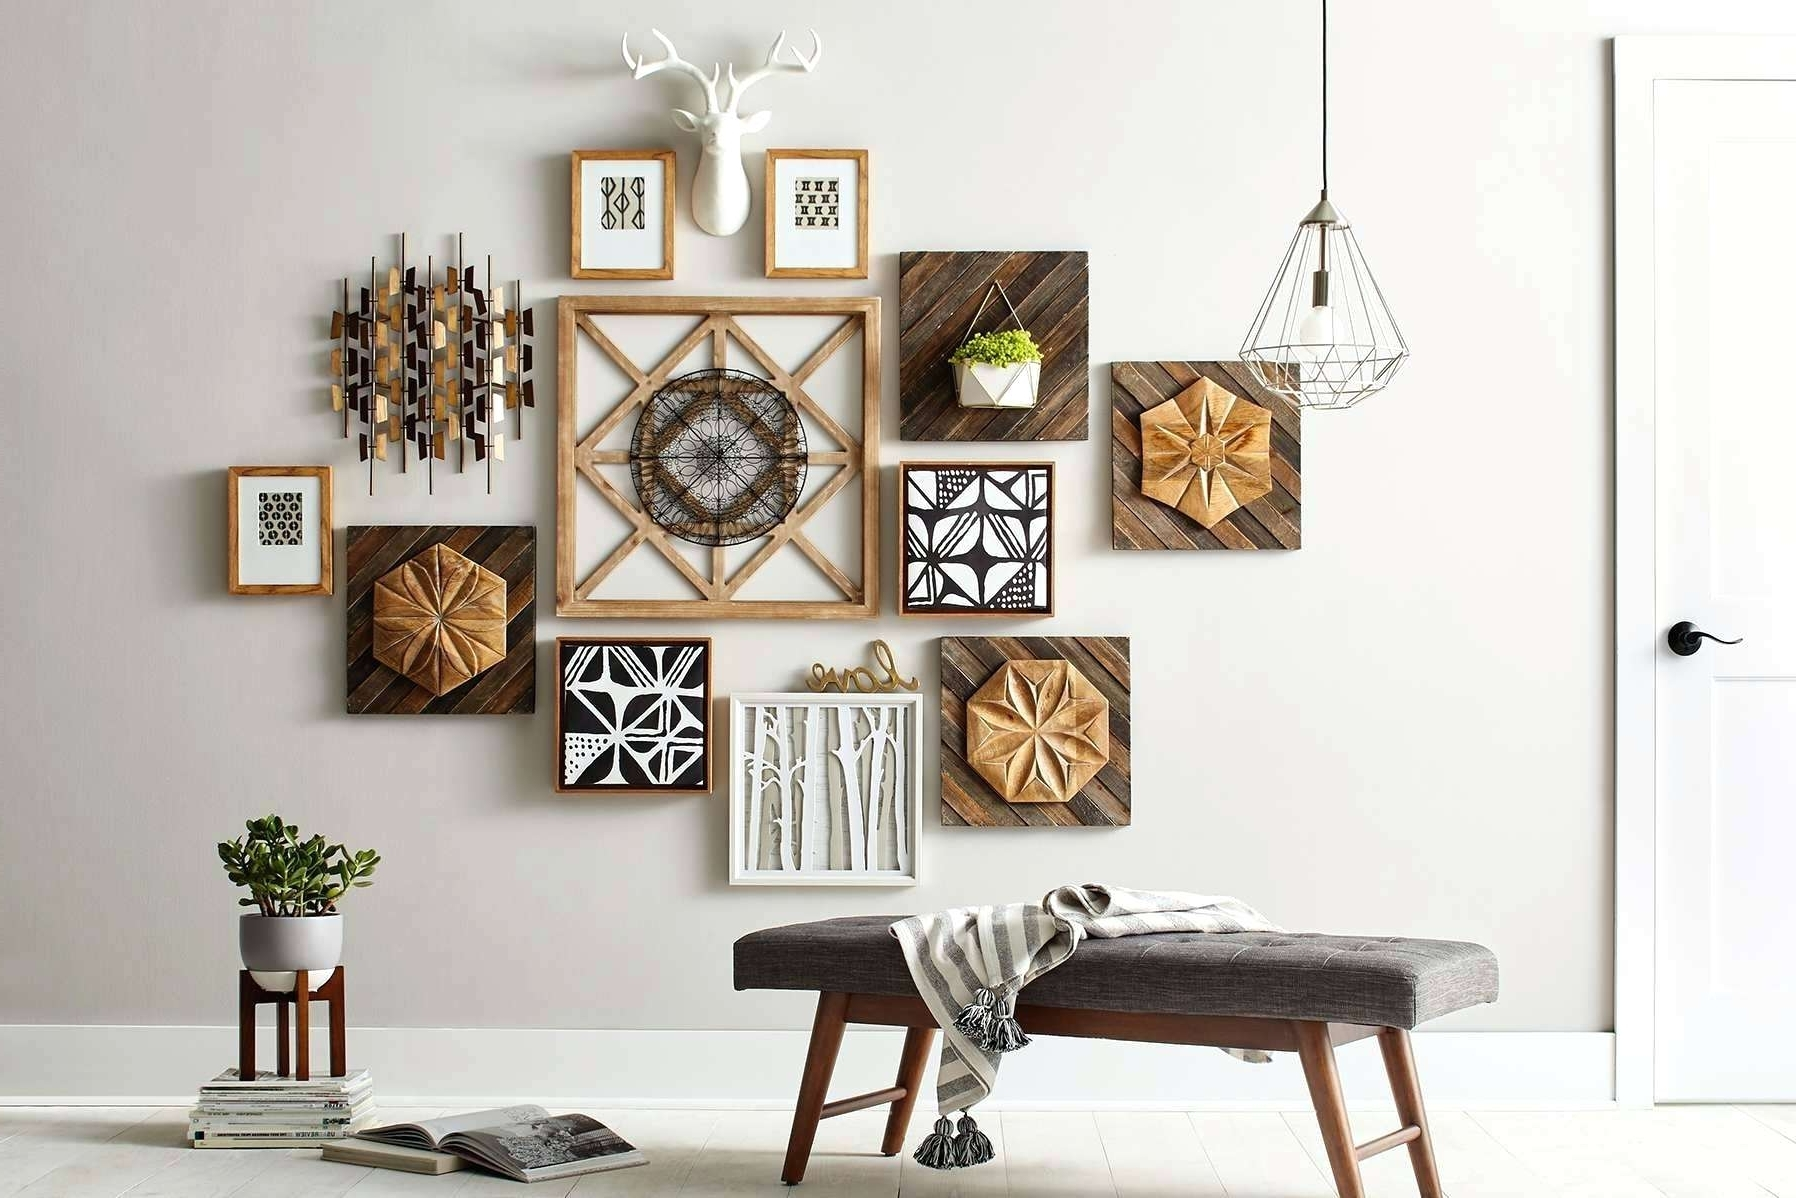 Target Wall Art Pertaining To Preferred Wall Tapestrie Nice Wall Art Target – Wall Decoration And Wall Art Ideas (View 10 of 15)